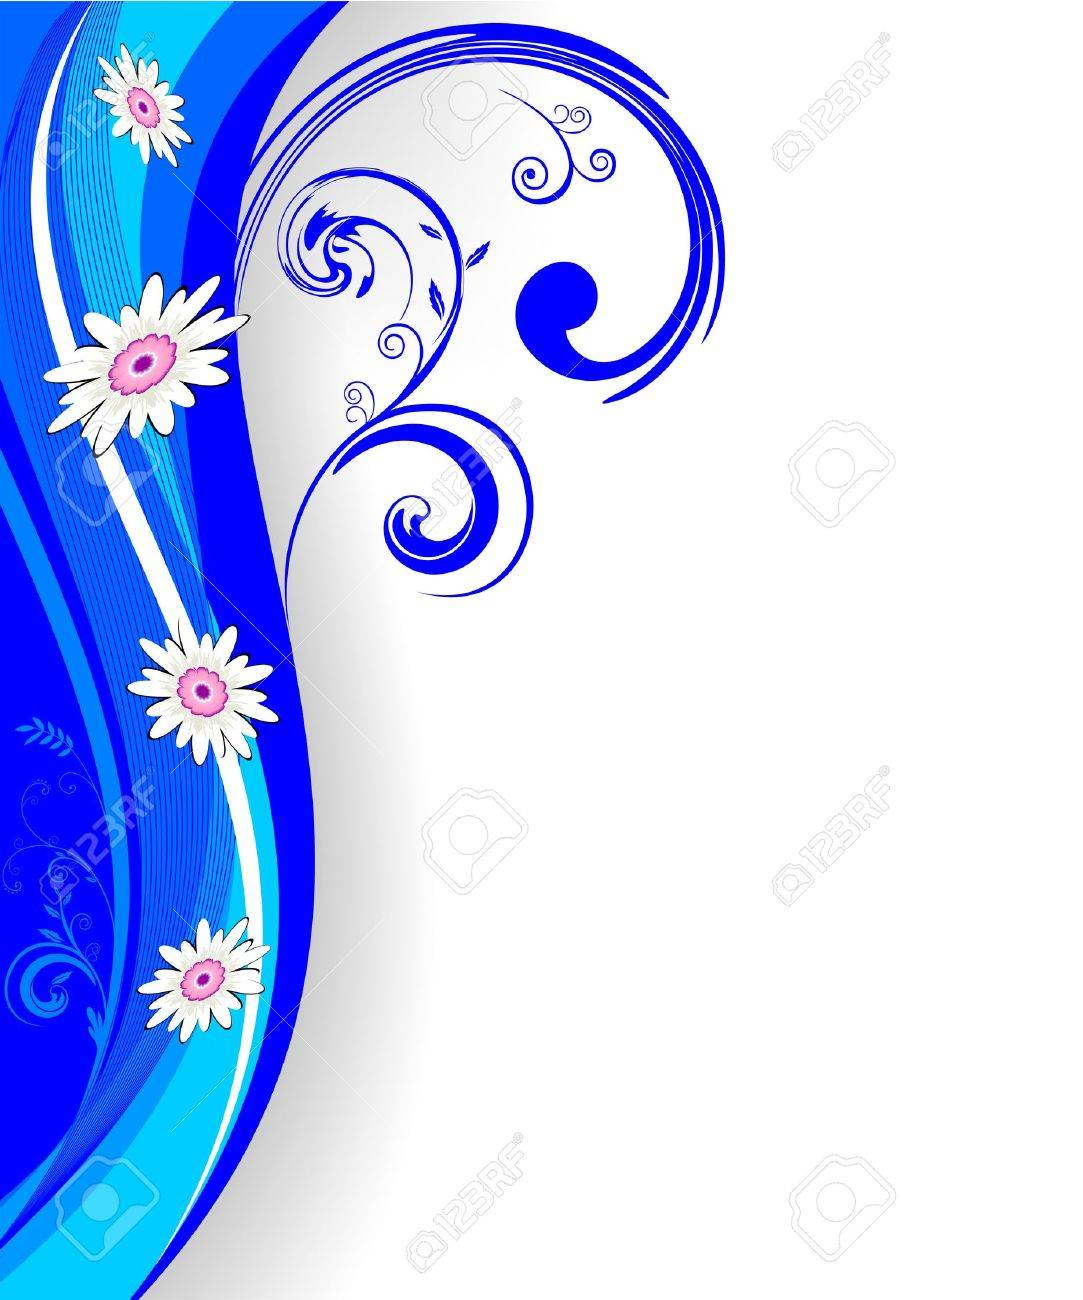 Abstract Floral motif for background or wallpaper - 10889111